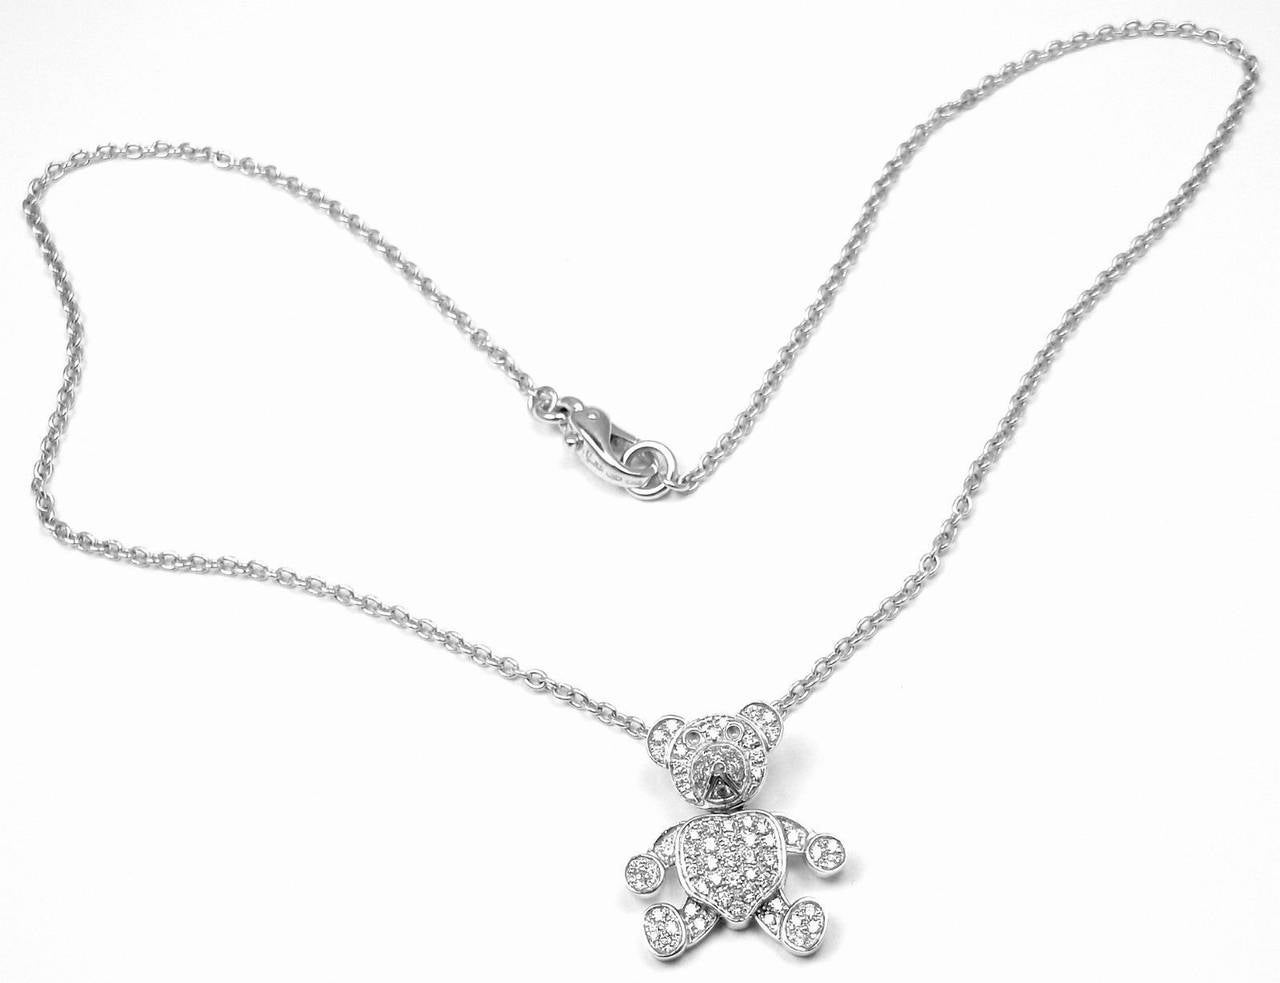 Pomellato Diamond Gold Teddy Bear Pendant Necklace 8